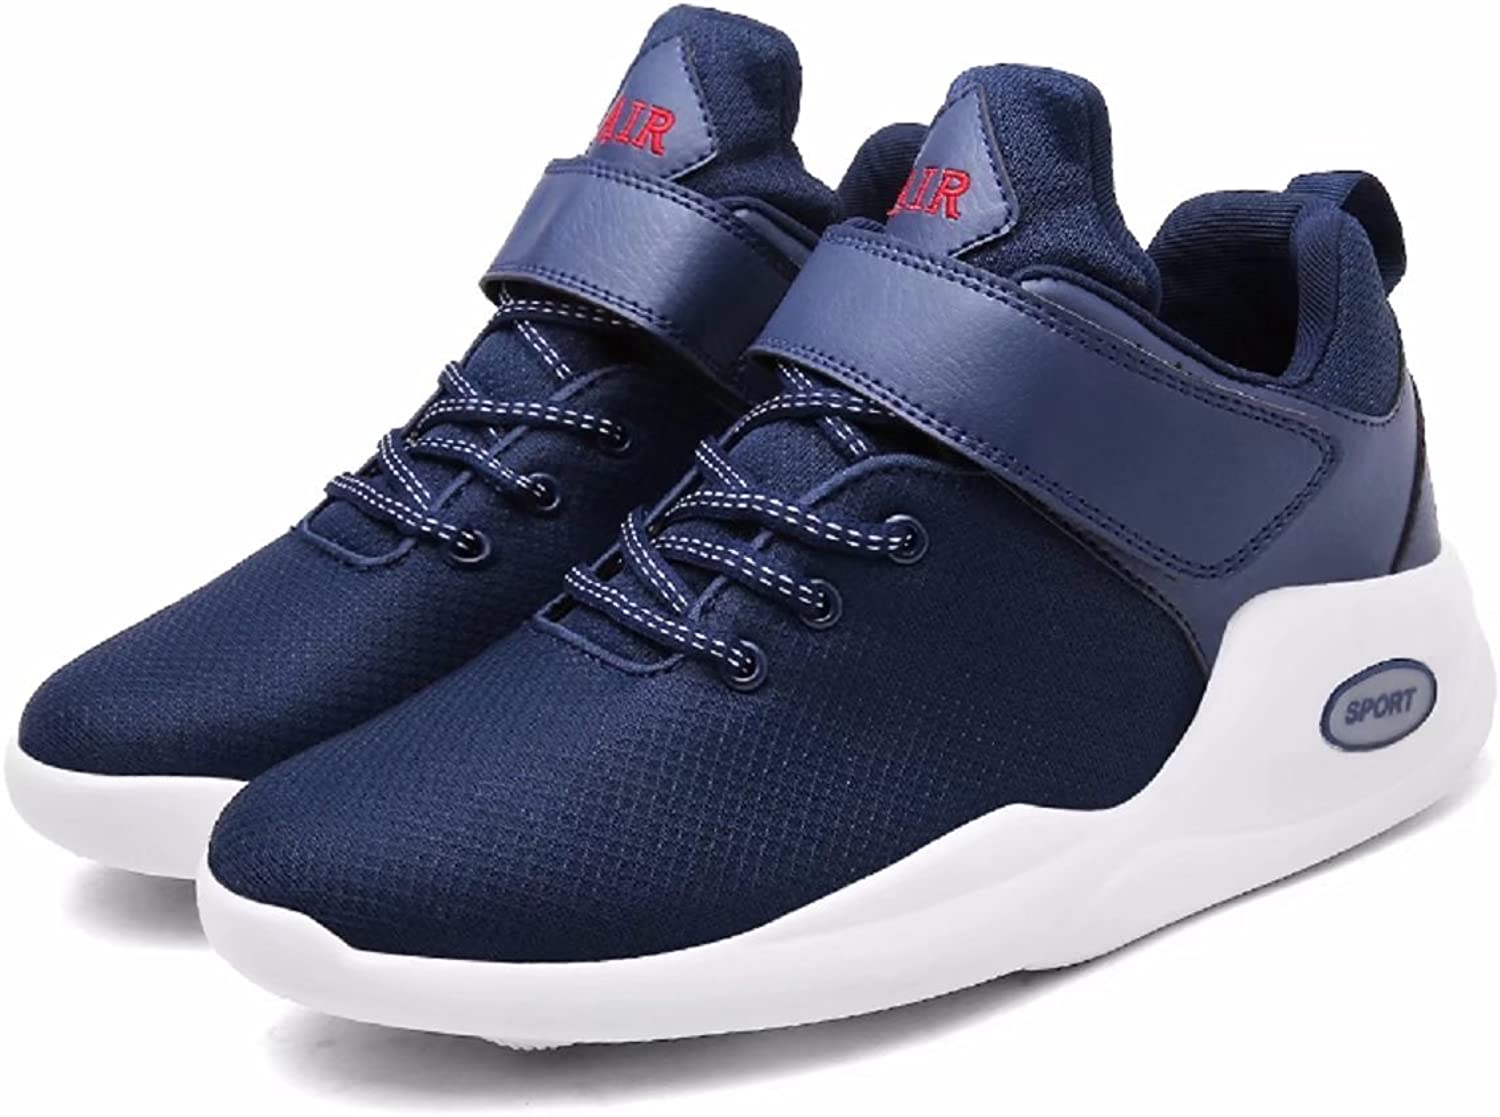 Men's Unisex Air Performance Force Allstart Basketball shoes Trail Running Casual Ankle-High Breathable Mid Atheltic Sports shoes Sneakers for Women